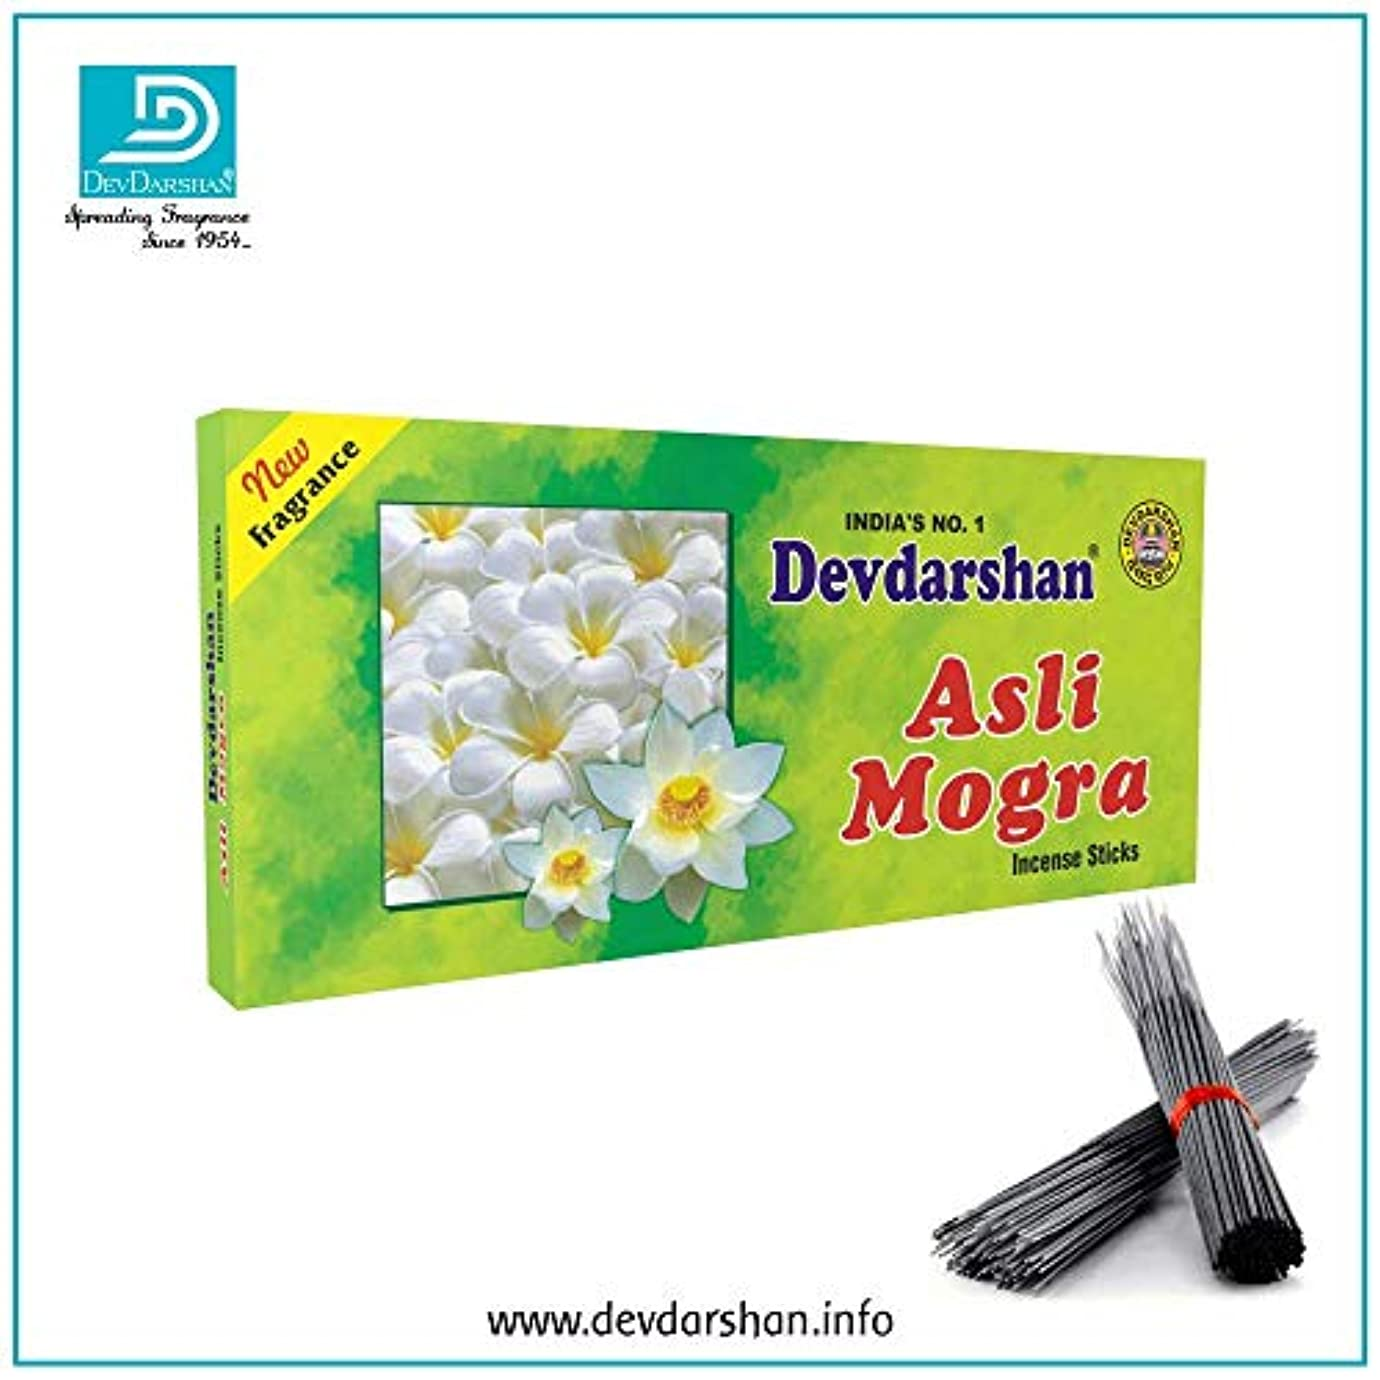 建築家煙突和Devdarshan Asli Mogra Agarbatti (Pack of 12) 40g Each Unit